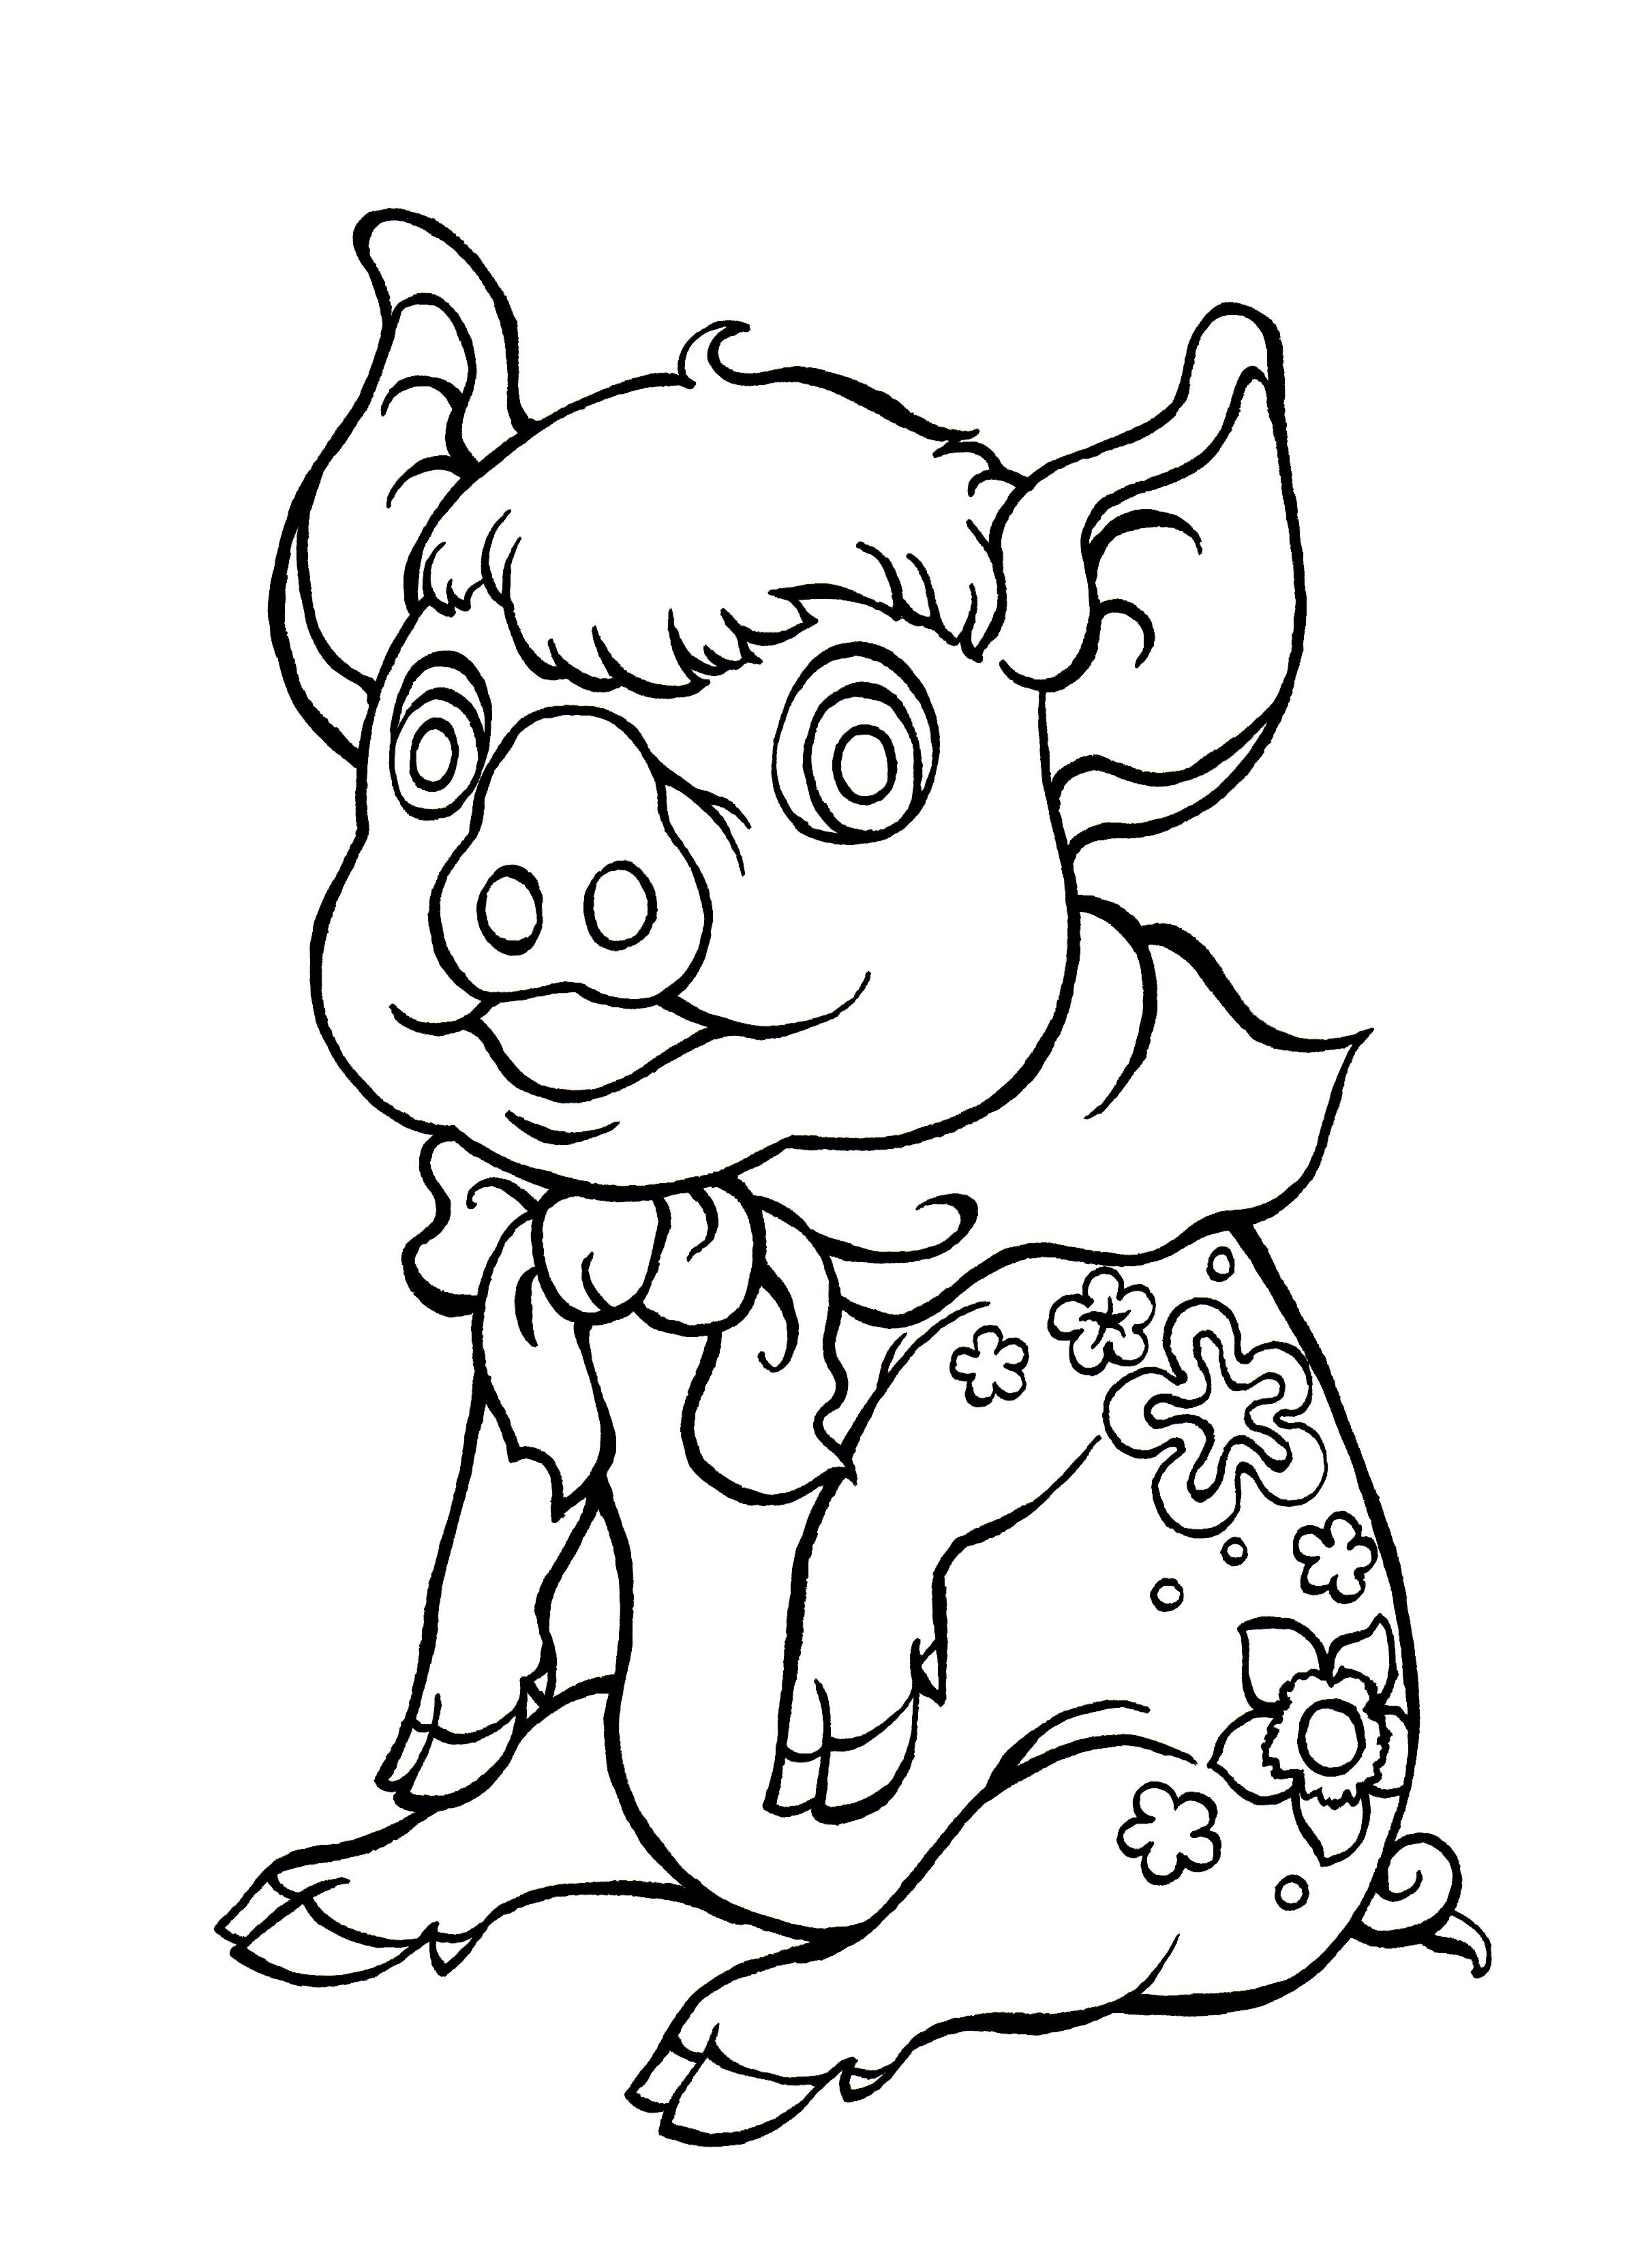 Year of the Pig. FREE colouring sheet for children from